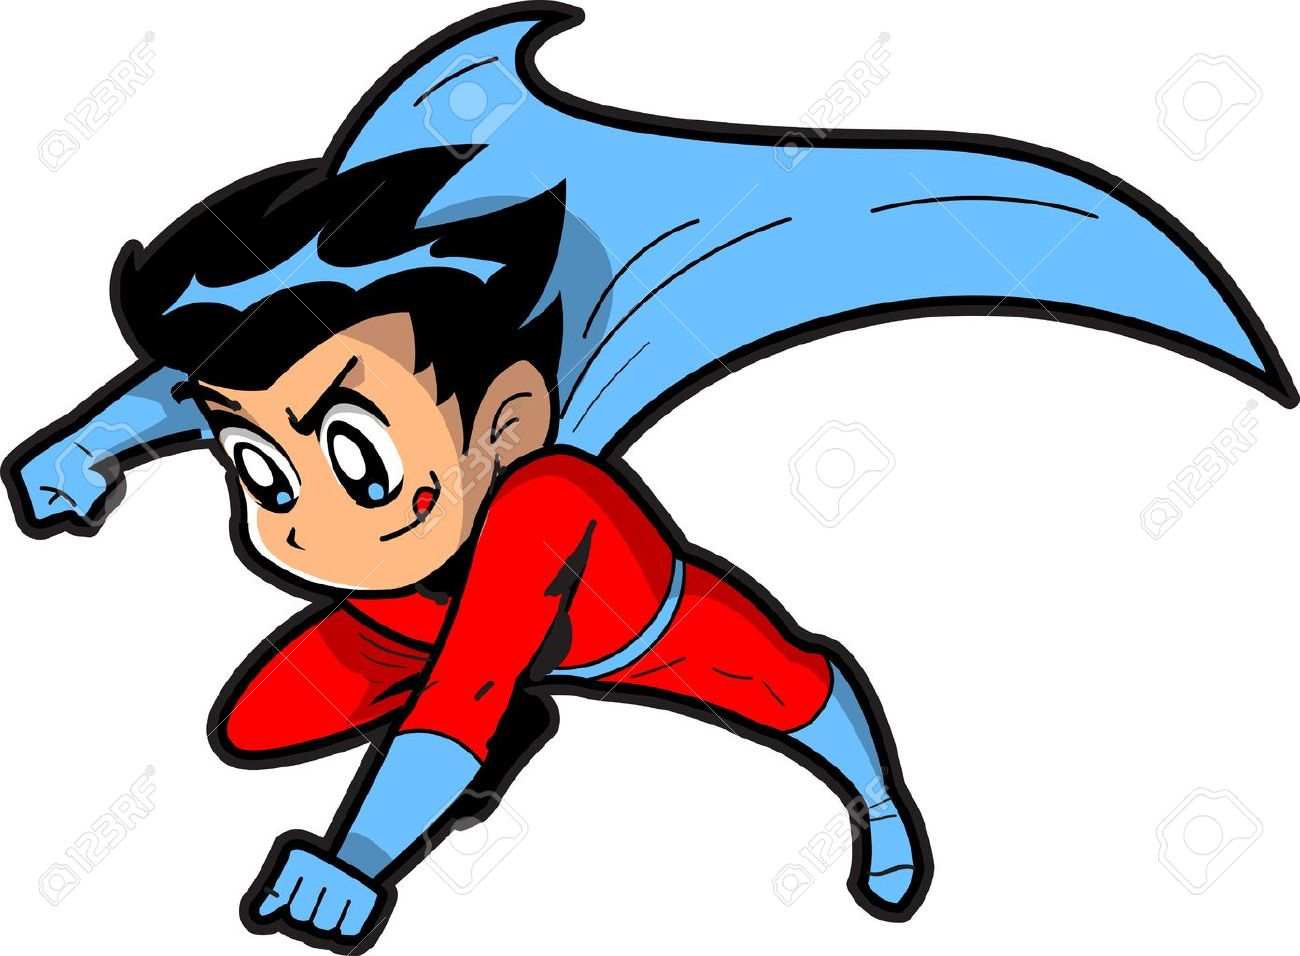 Anime Manga Boy Flying Superh - Anime Clipart